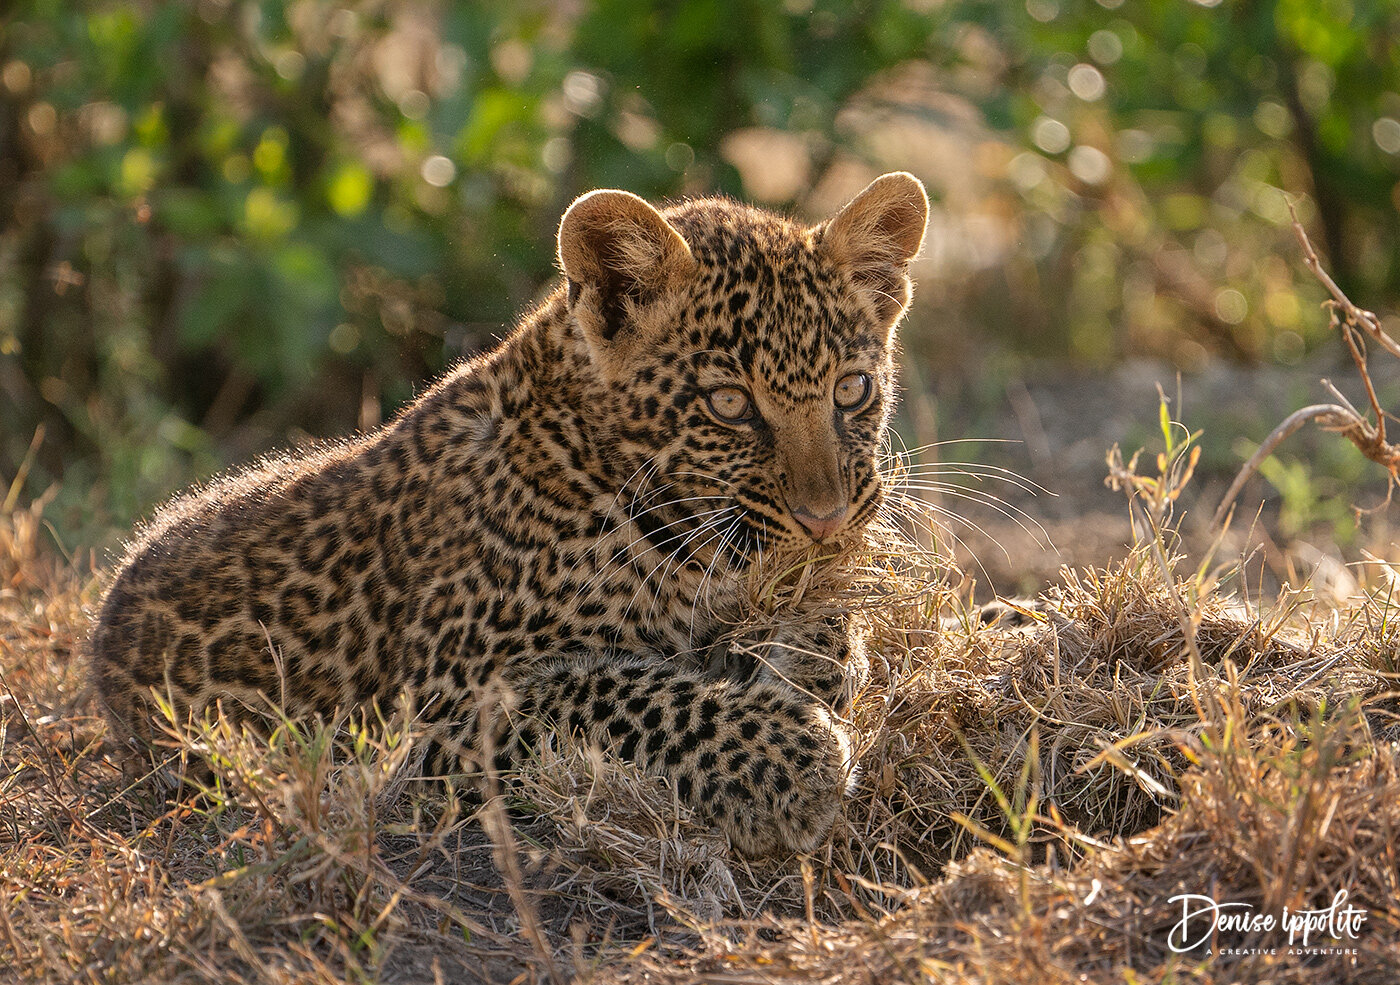 A male Leopard cub playing with some moss. I liked the backlighting for this one. The cub was brave and so adorable to watch. Since he had no siblings to play with he made use of every single thing he could get his paws on.